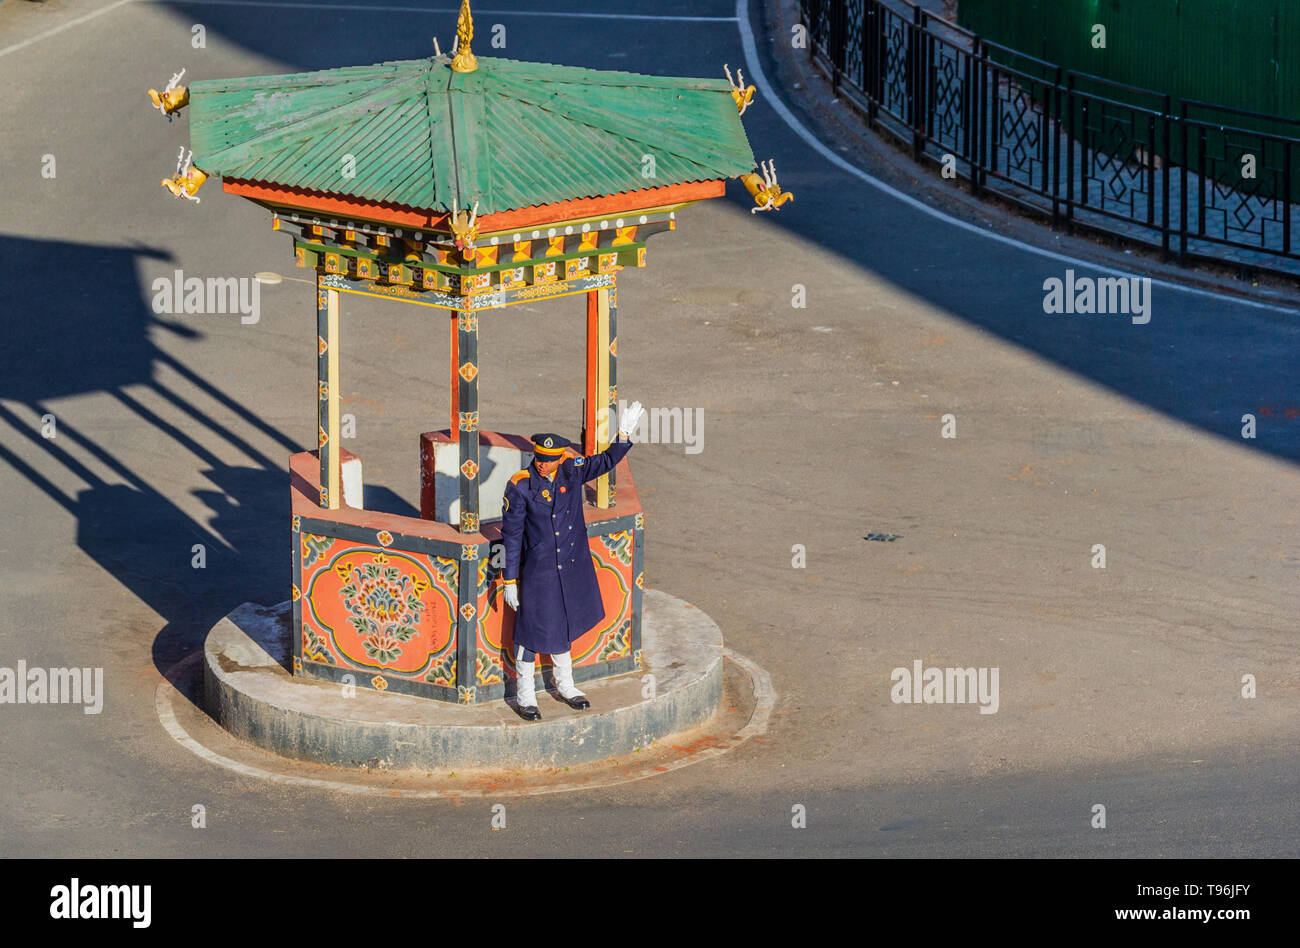 Policeman directing traffic in the capital of Bhutan Thimpu. Bhutan doesn't have any traffic lights. - Stock Image